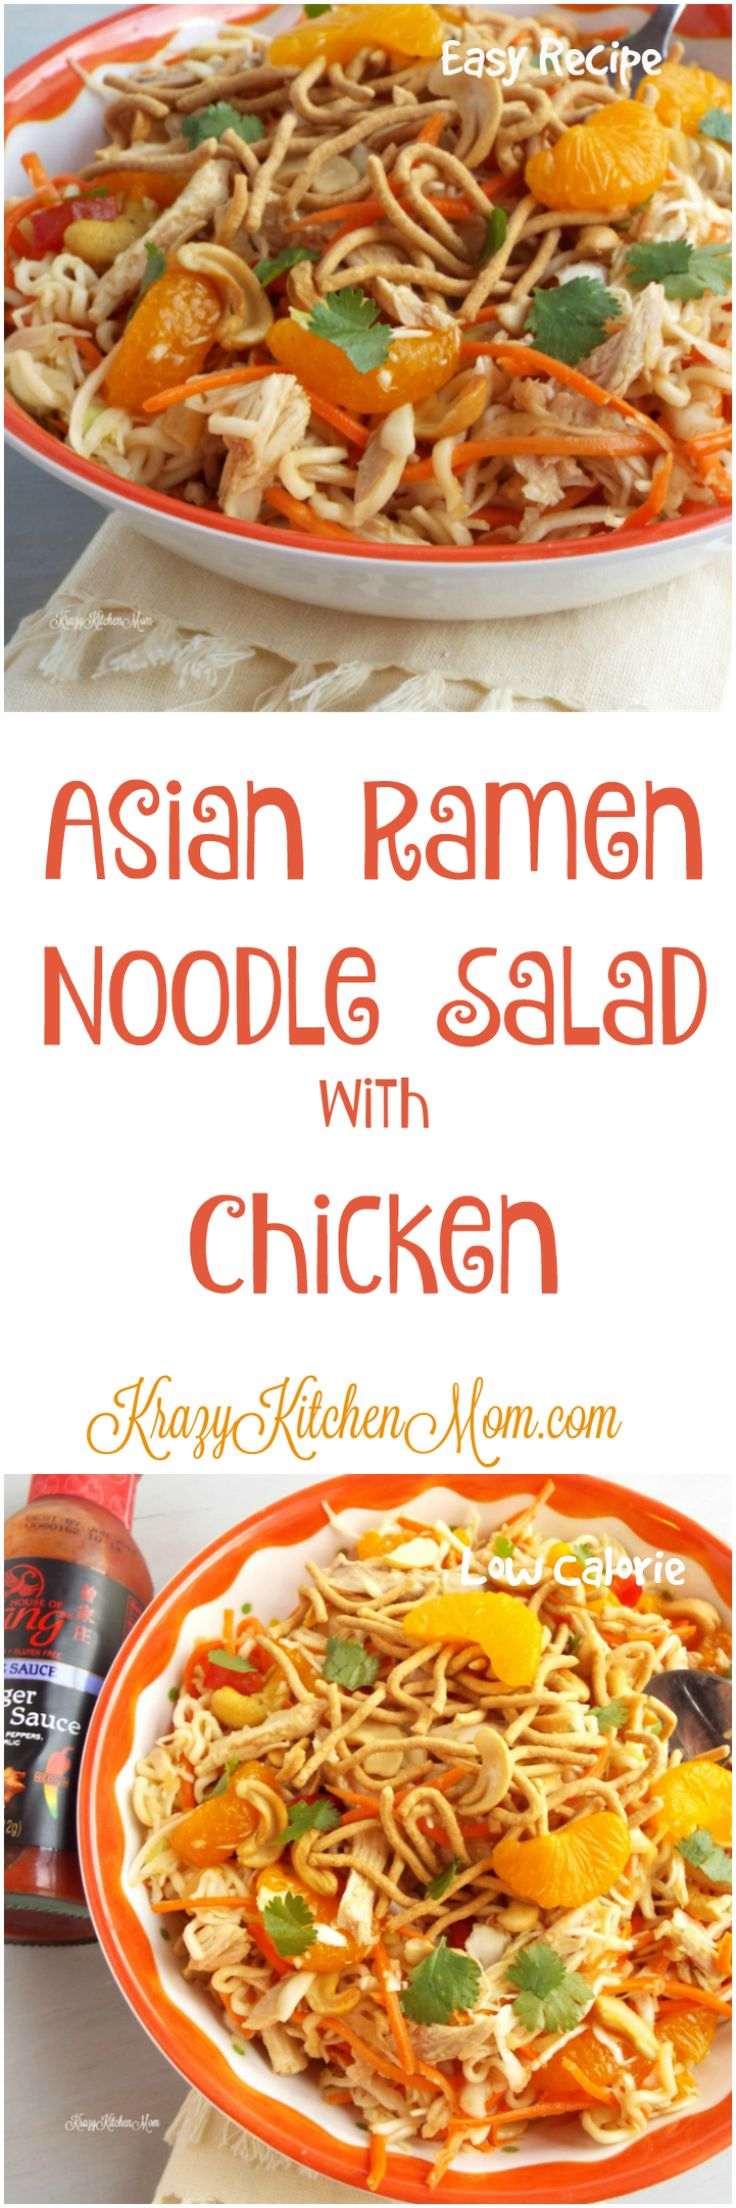 Easy Low Calorie salad made with cabbage, ramen noodles and shredded chicken all tossed in a delicious dressing made with House of Tsang Ginger Sriracha Sauce.